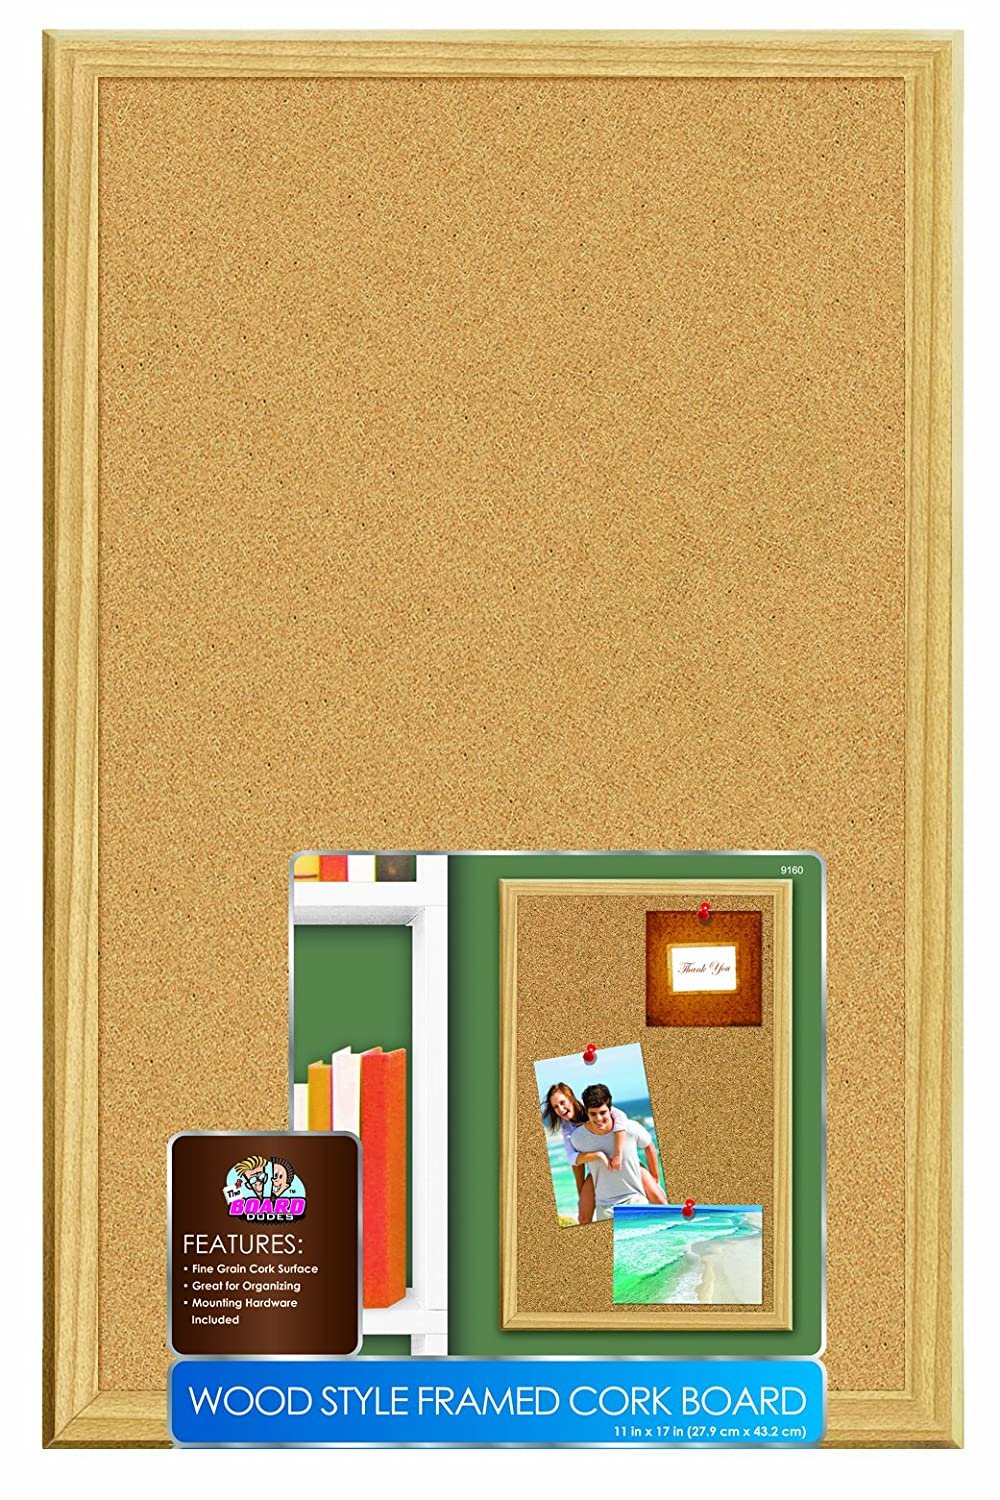 Board Dudes 11 x 17 Inches Wood Style Framed Cork Board (9160) Mattel CXM88